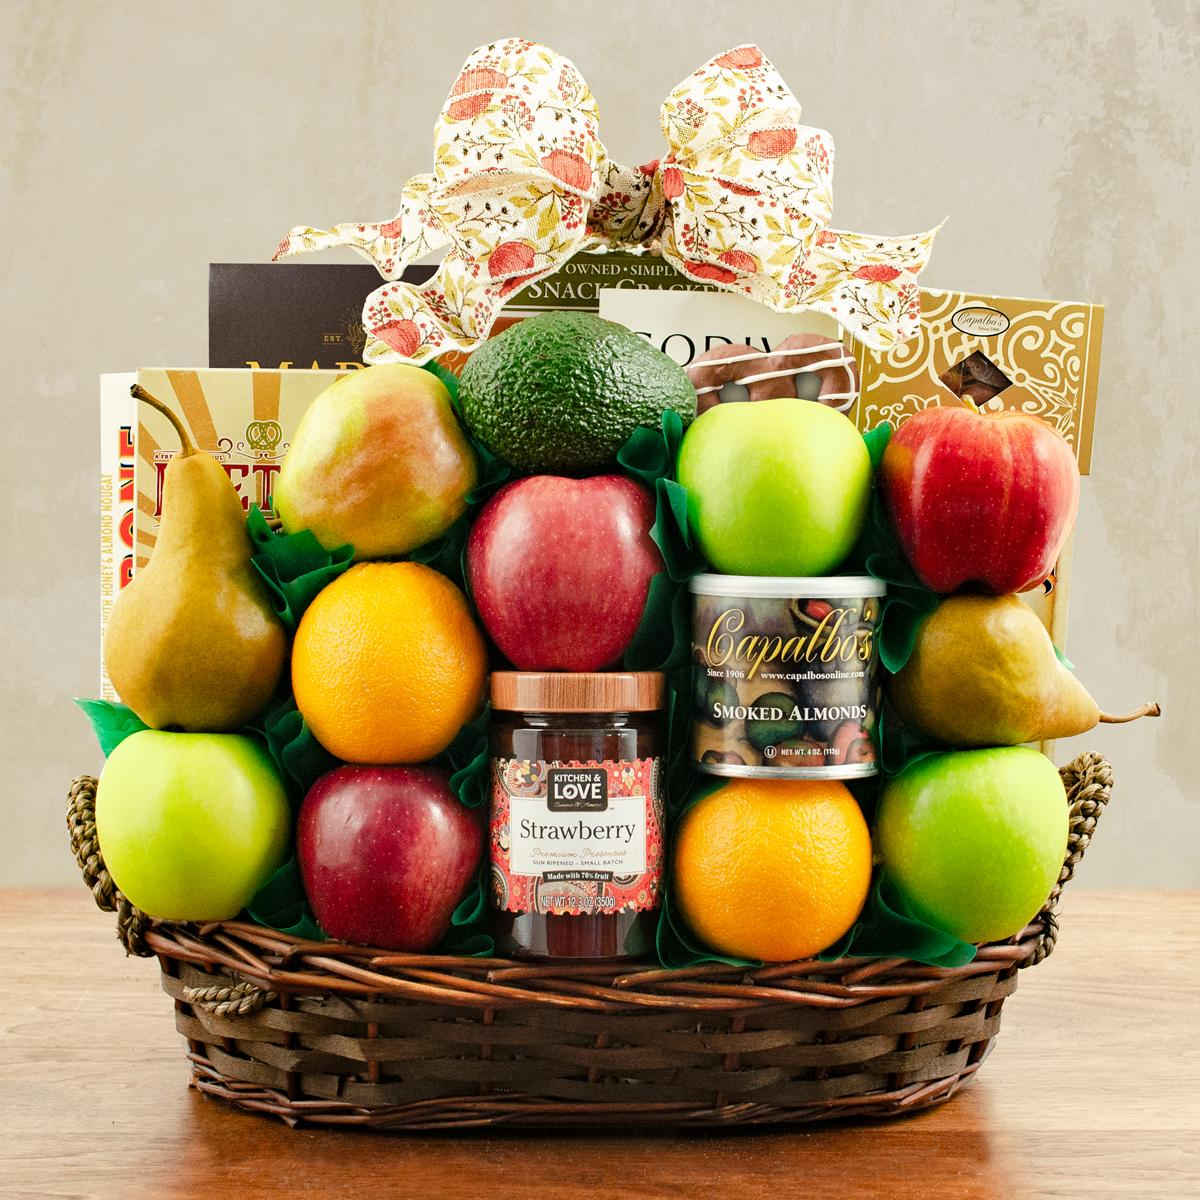 Capalbos Masada Fruit and Kosher Food Gift Basket